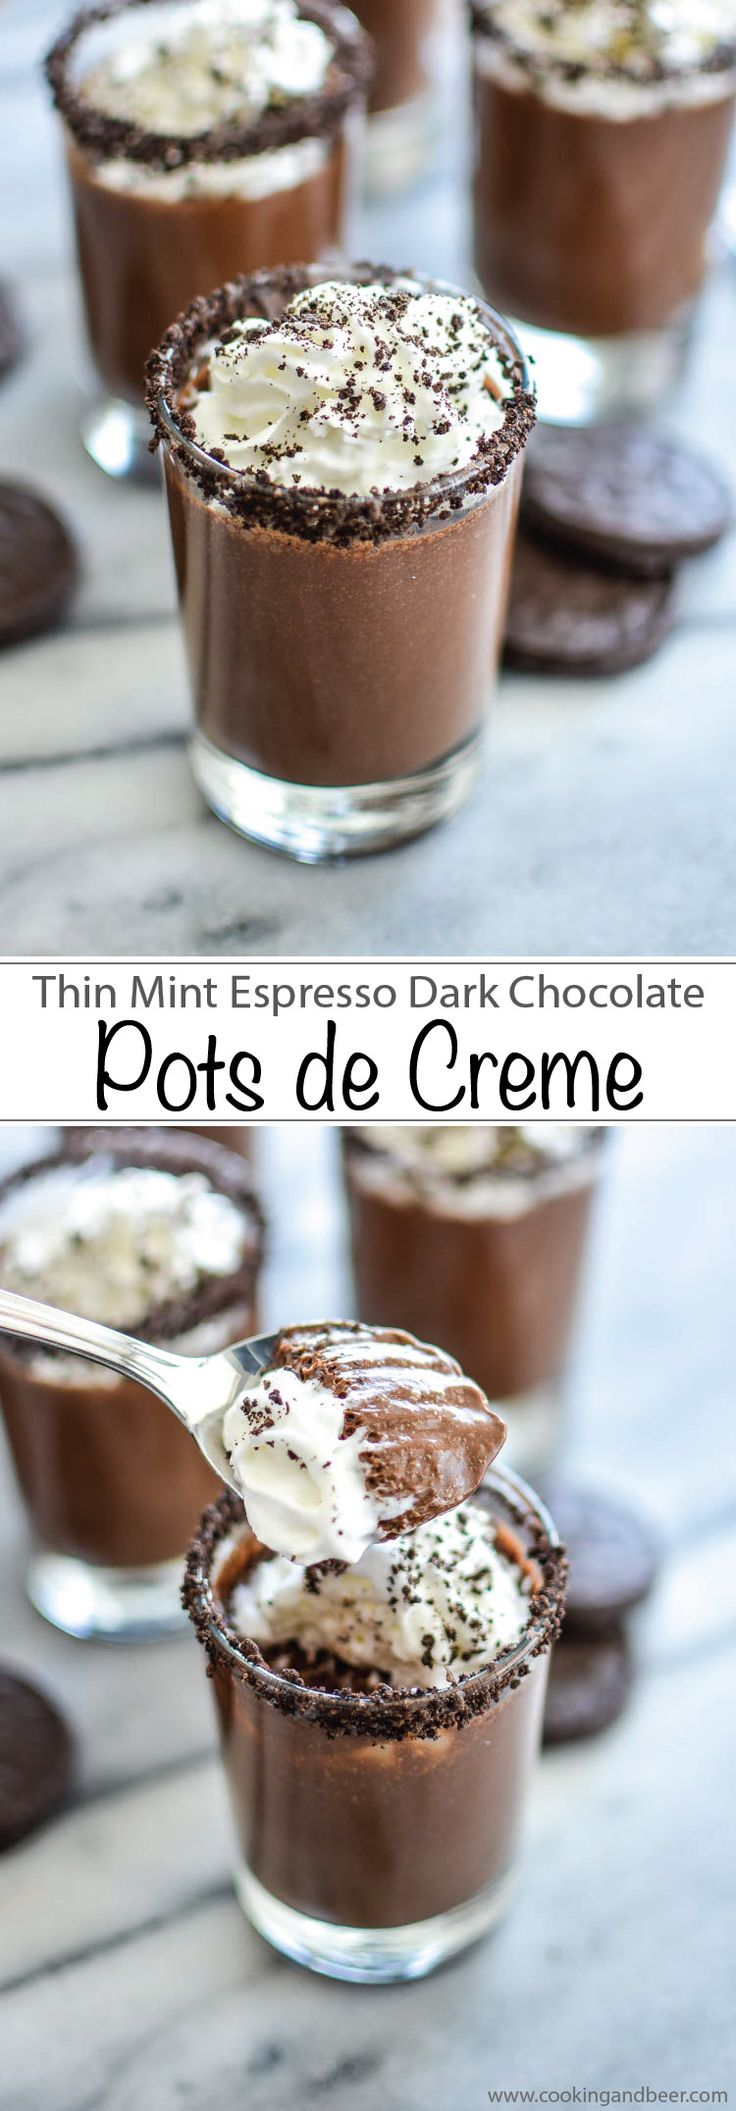 Thin Mint Dark Chocolate Espresso Pots de Creme Recipe is the perfect sweet indulgence!! | www.cookingandbeer.com